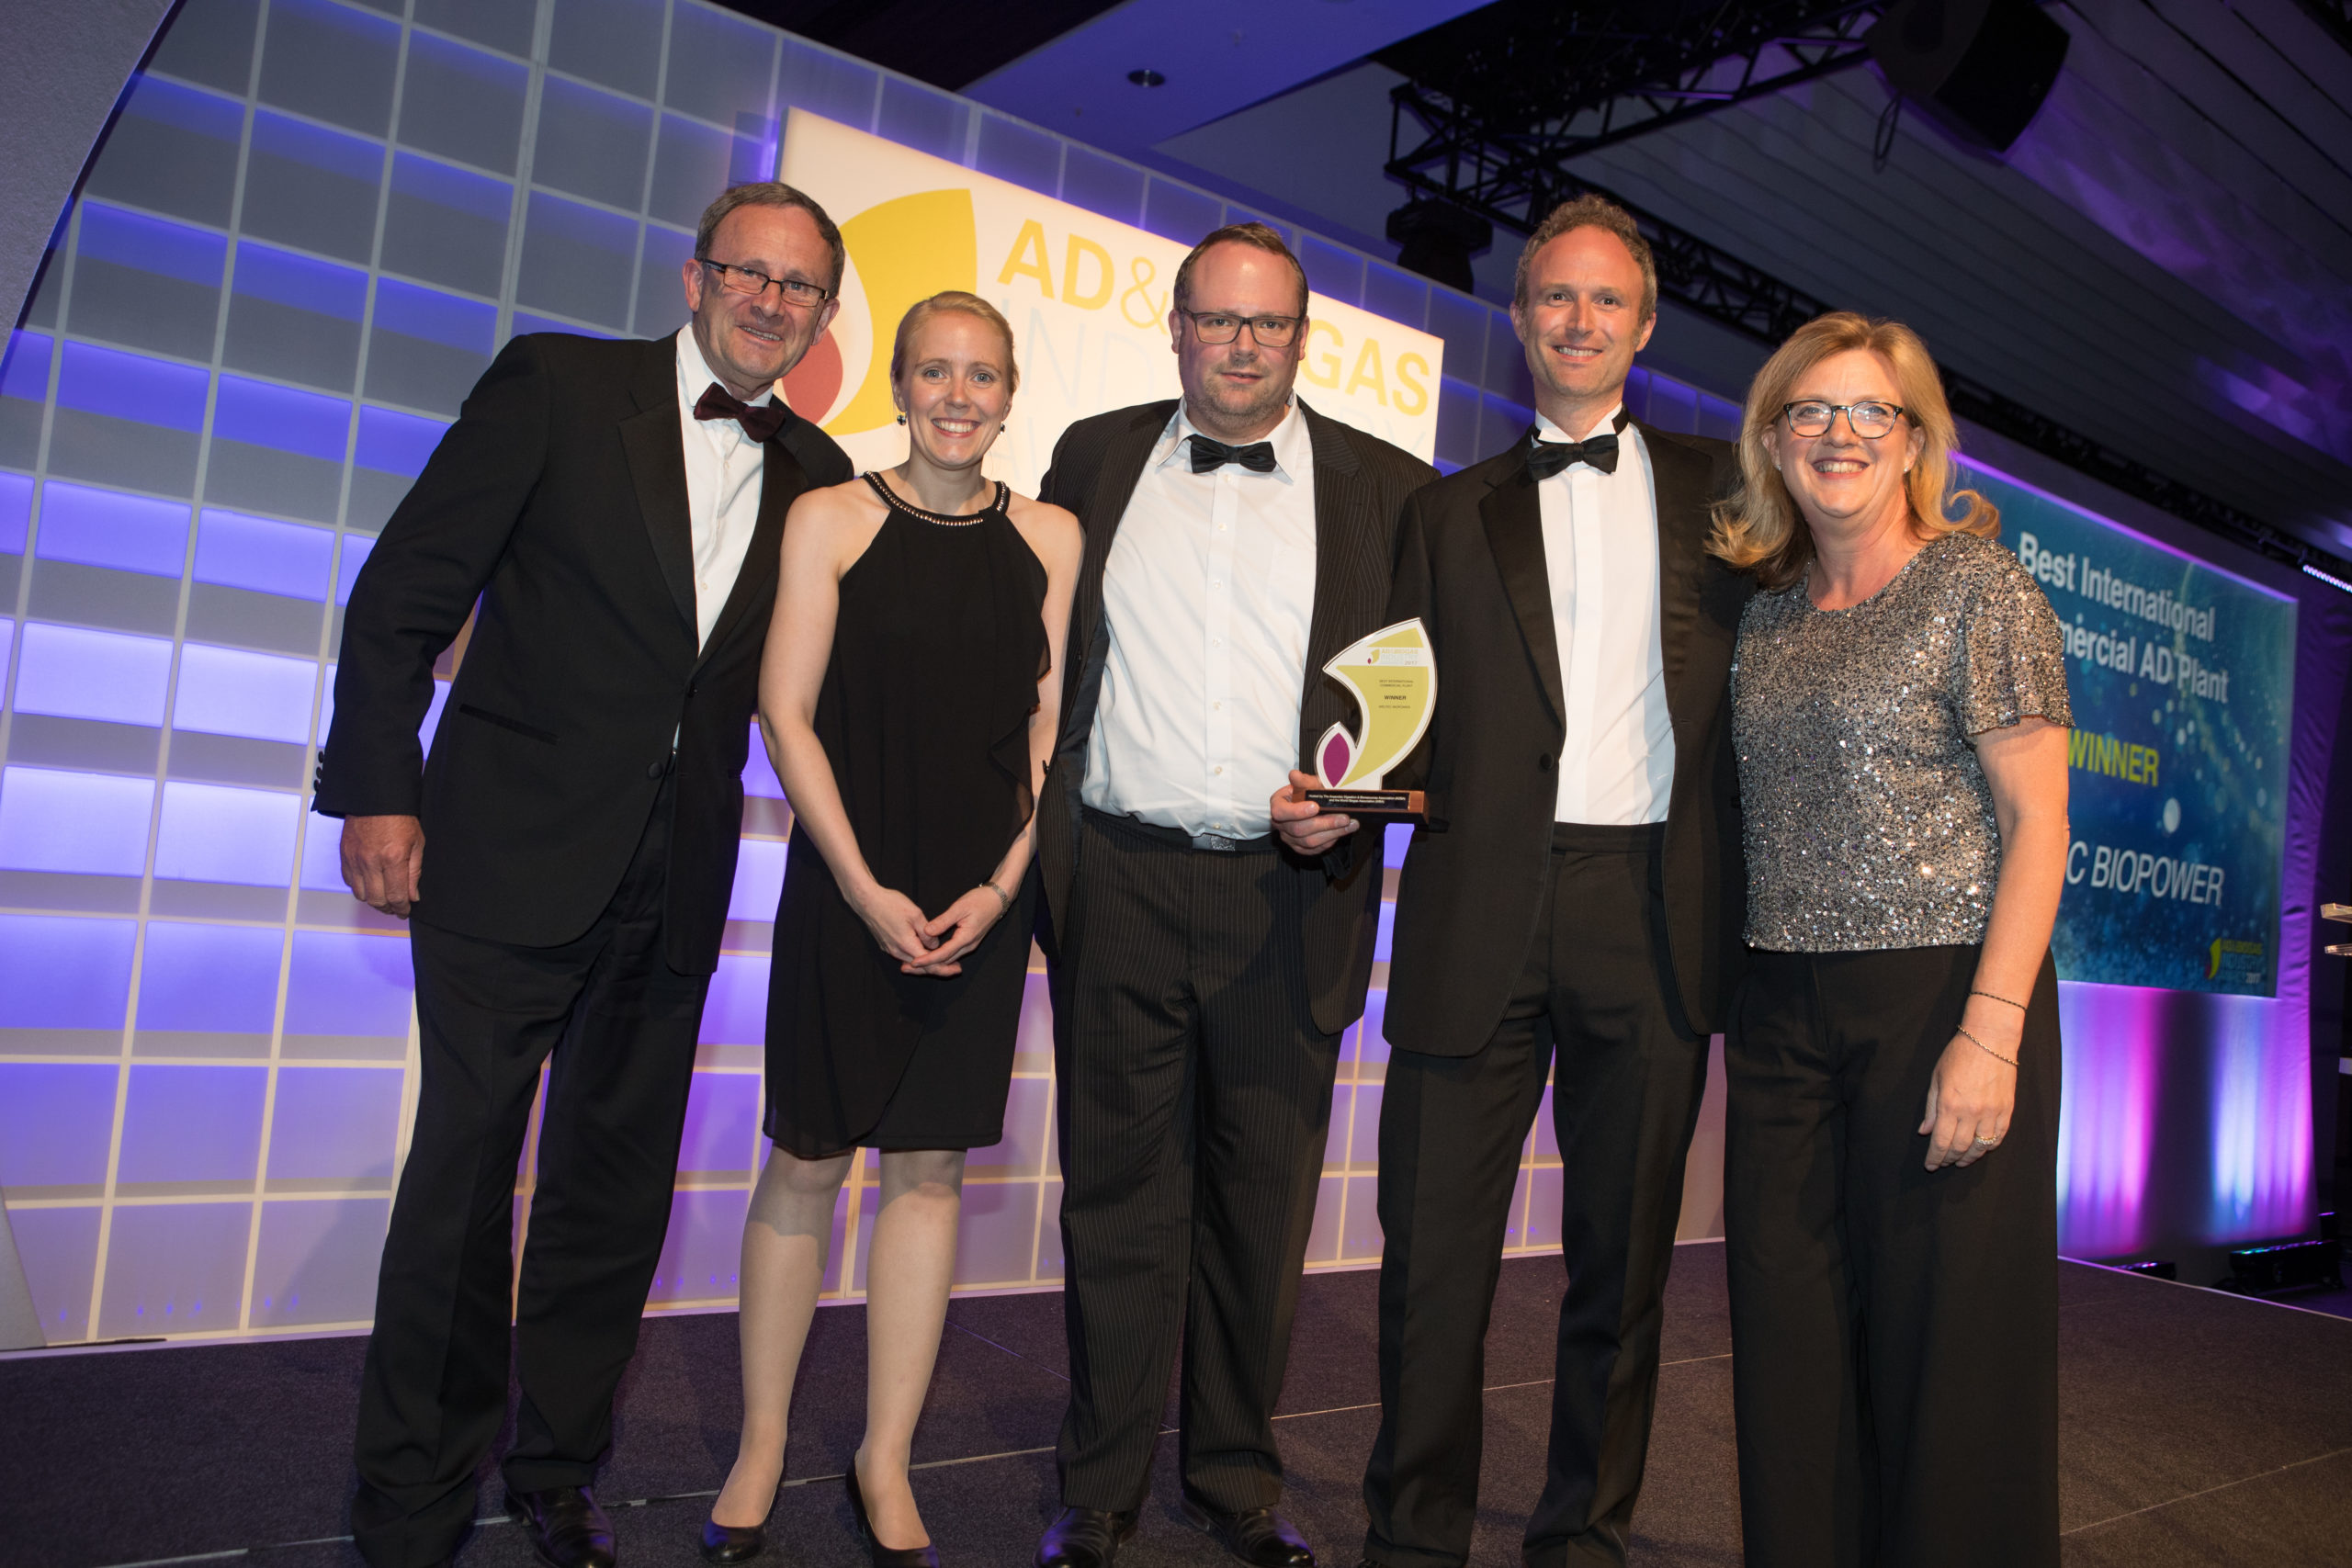 MEMBER'S PRESS RELEASE: WELTEC BIOPOWER Wins Two AD & Biogas Industry Awards